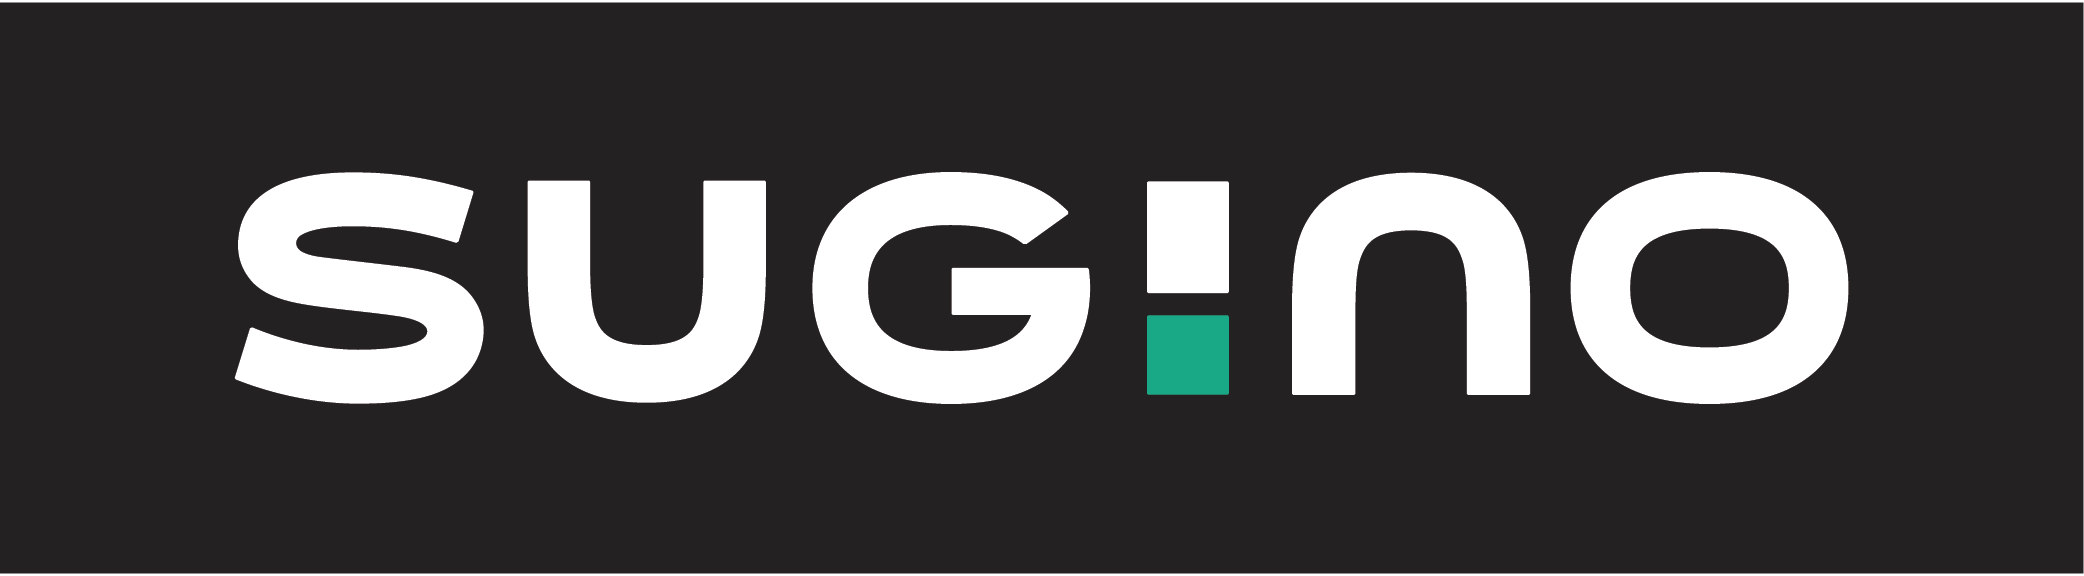 Sugino Logo on Dark Background